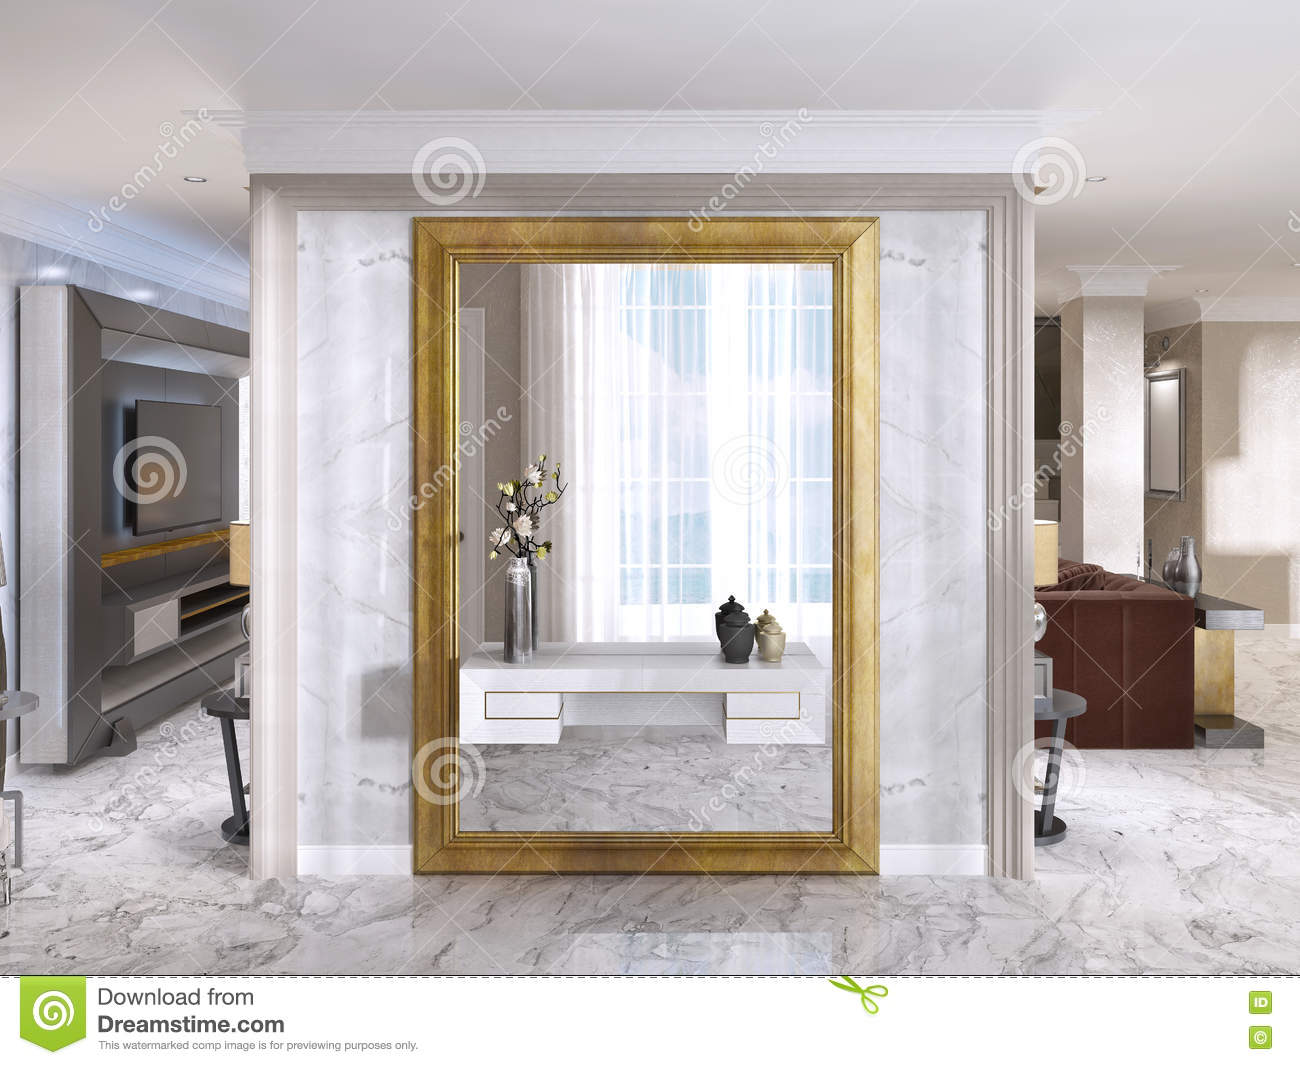 grand miroir vendre id es de d coration int rieure french decor. Black Bedroom Furniture Sets. Home Design Ideas